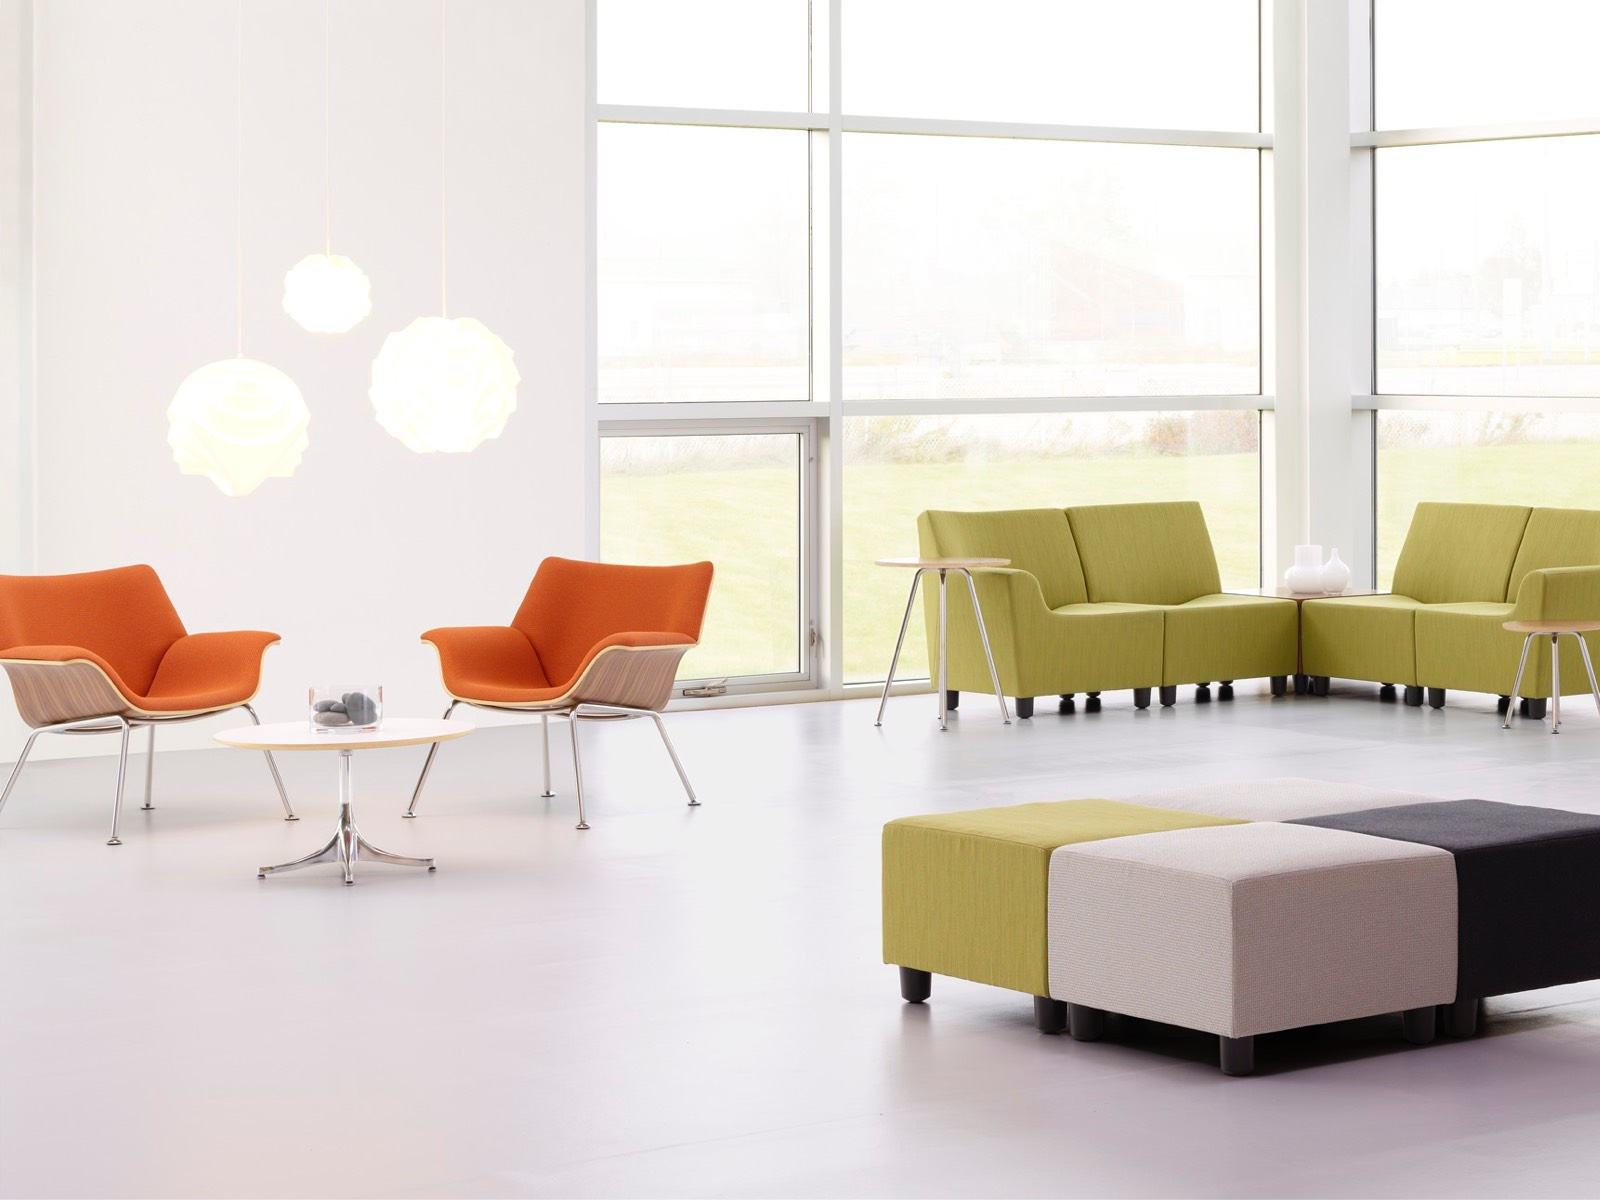 Orange Swoop lounge chairs and green Swoop modular seating in a casual gathering space.